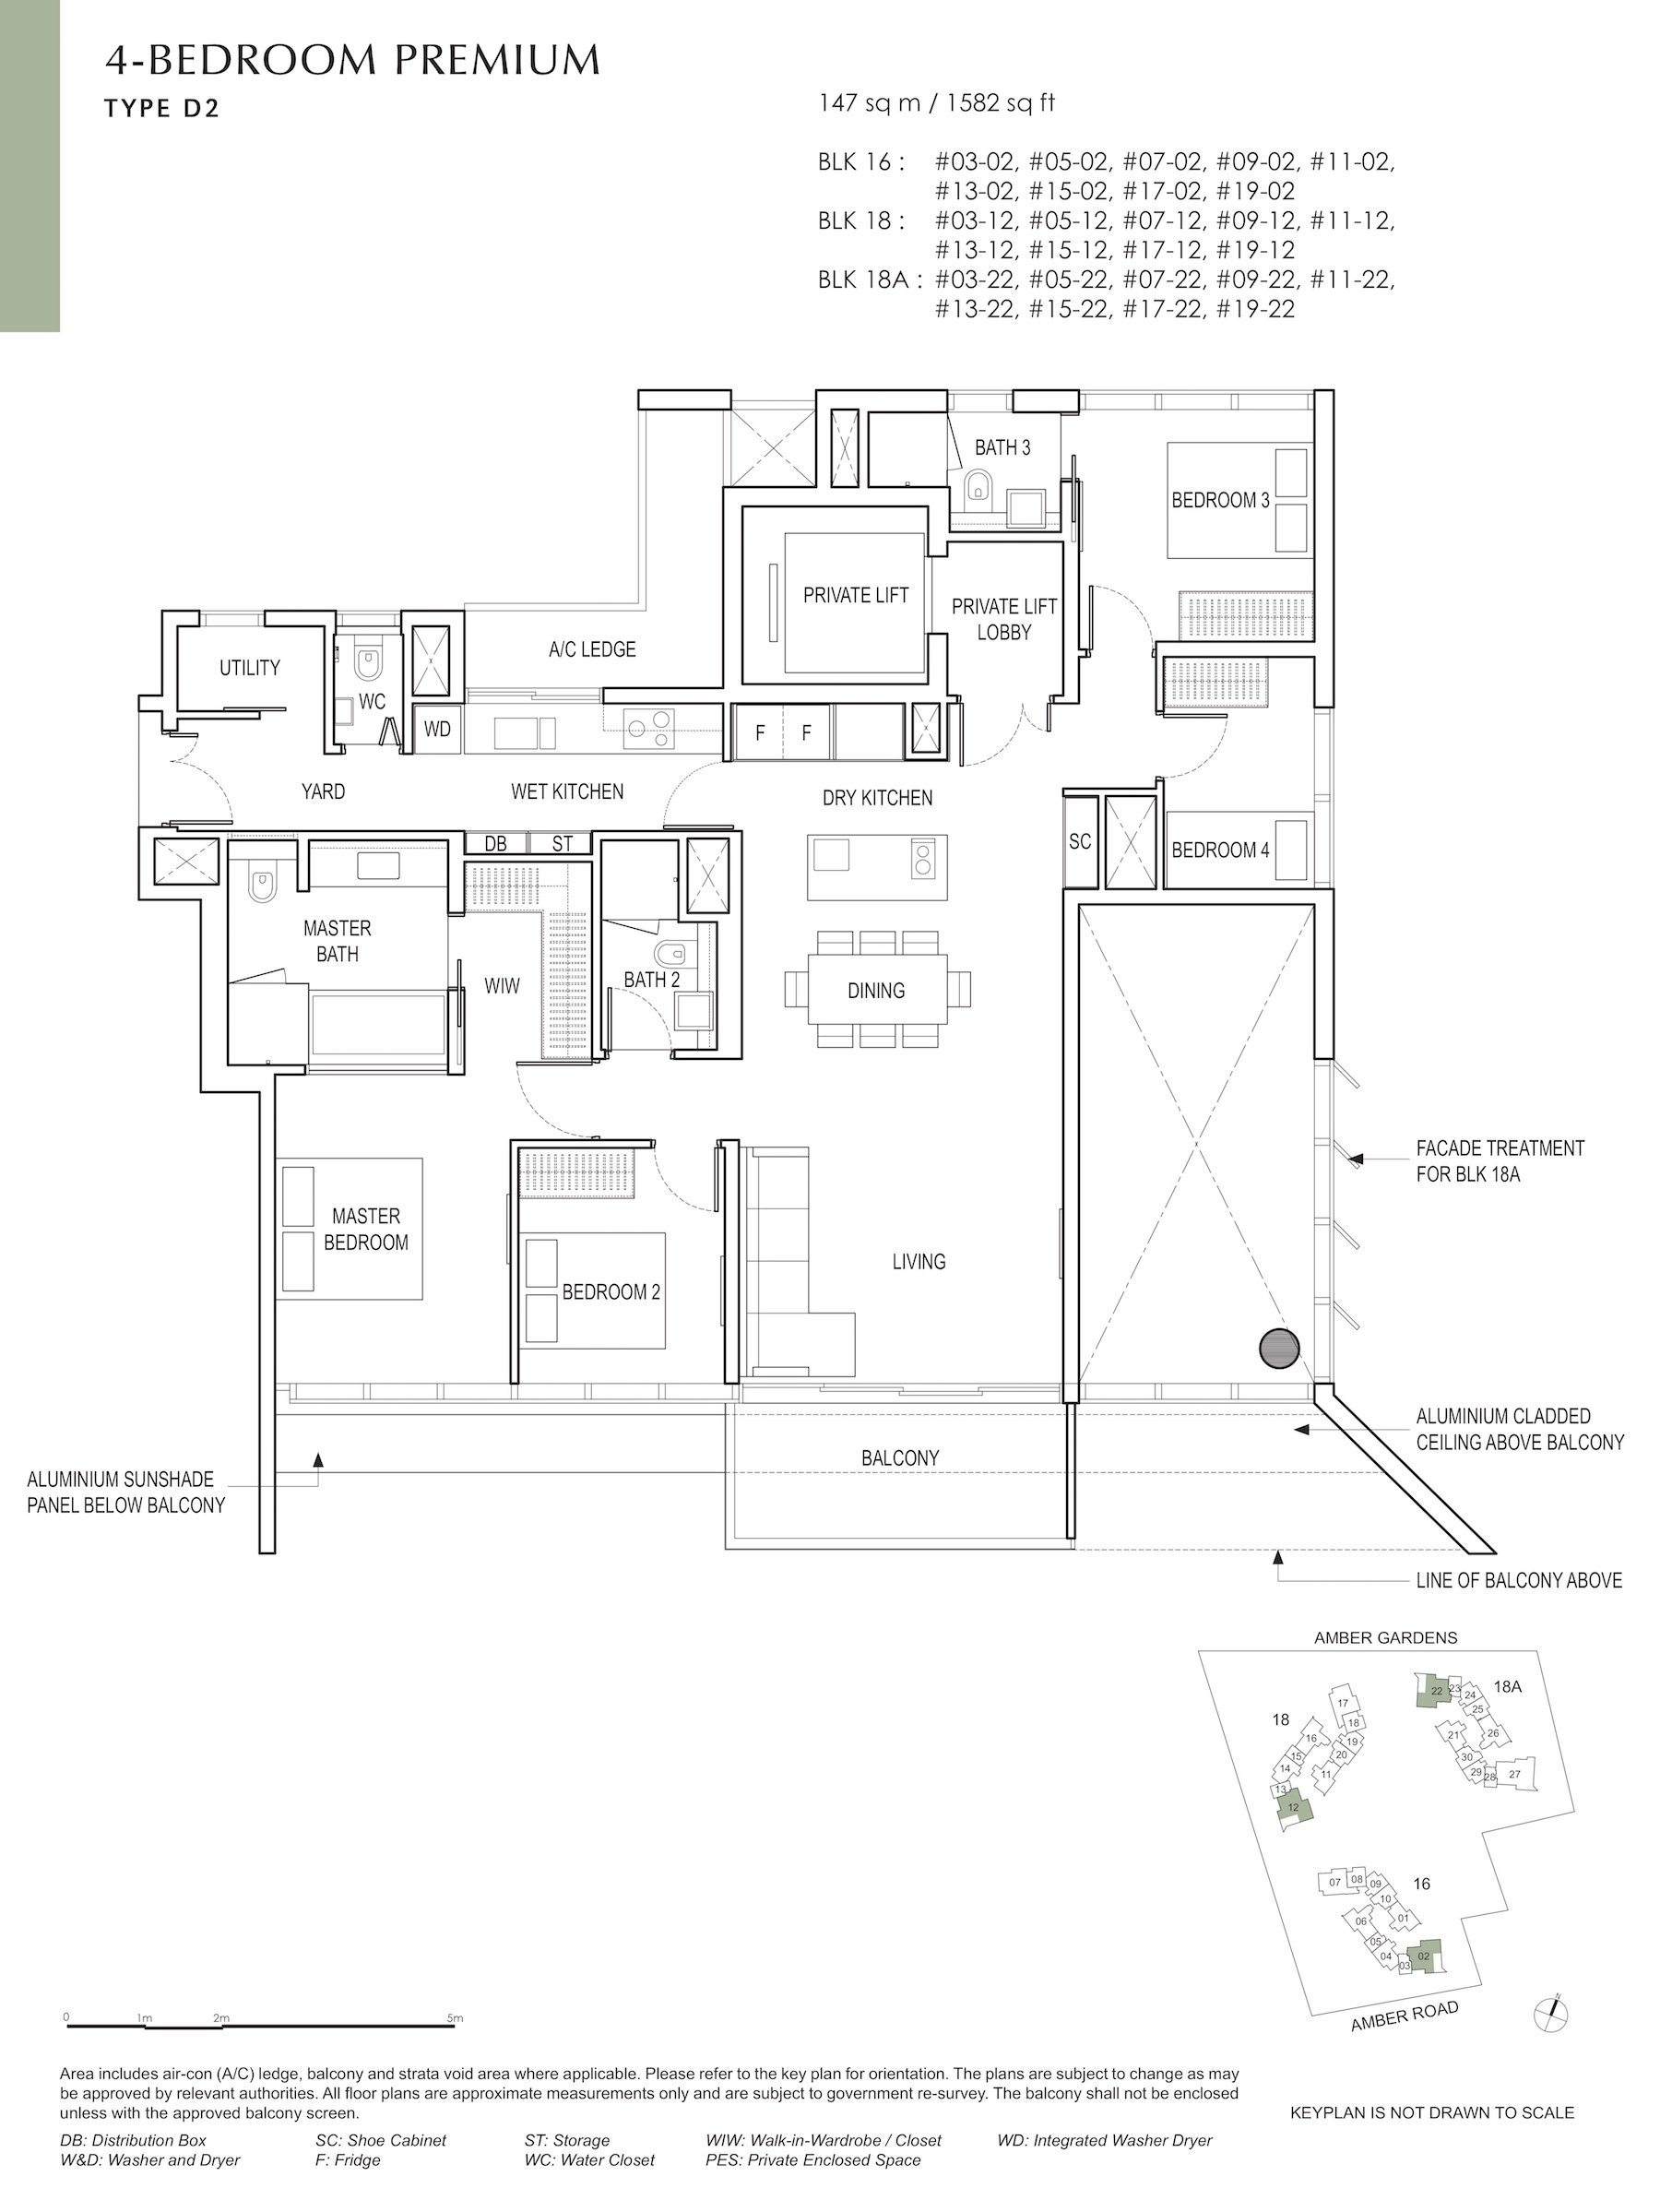 Amber Park 安铂苑 floor plan 4 bedroom premium 4卧房优质 D2